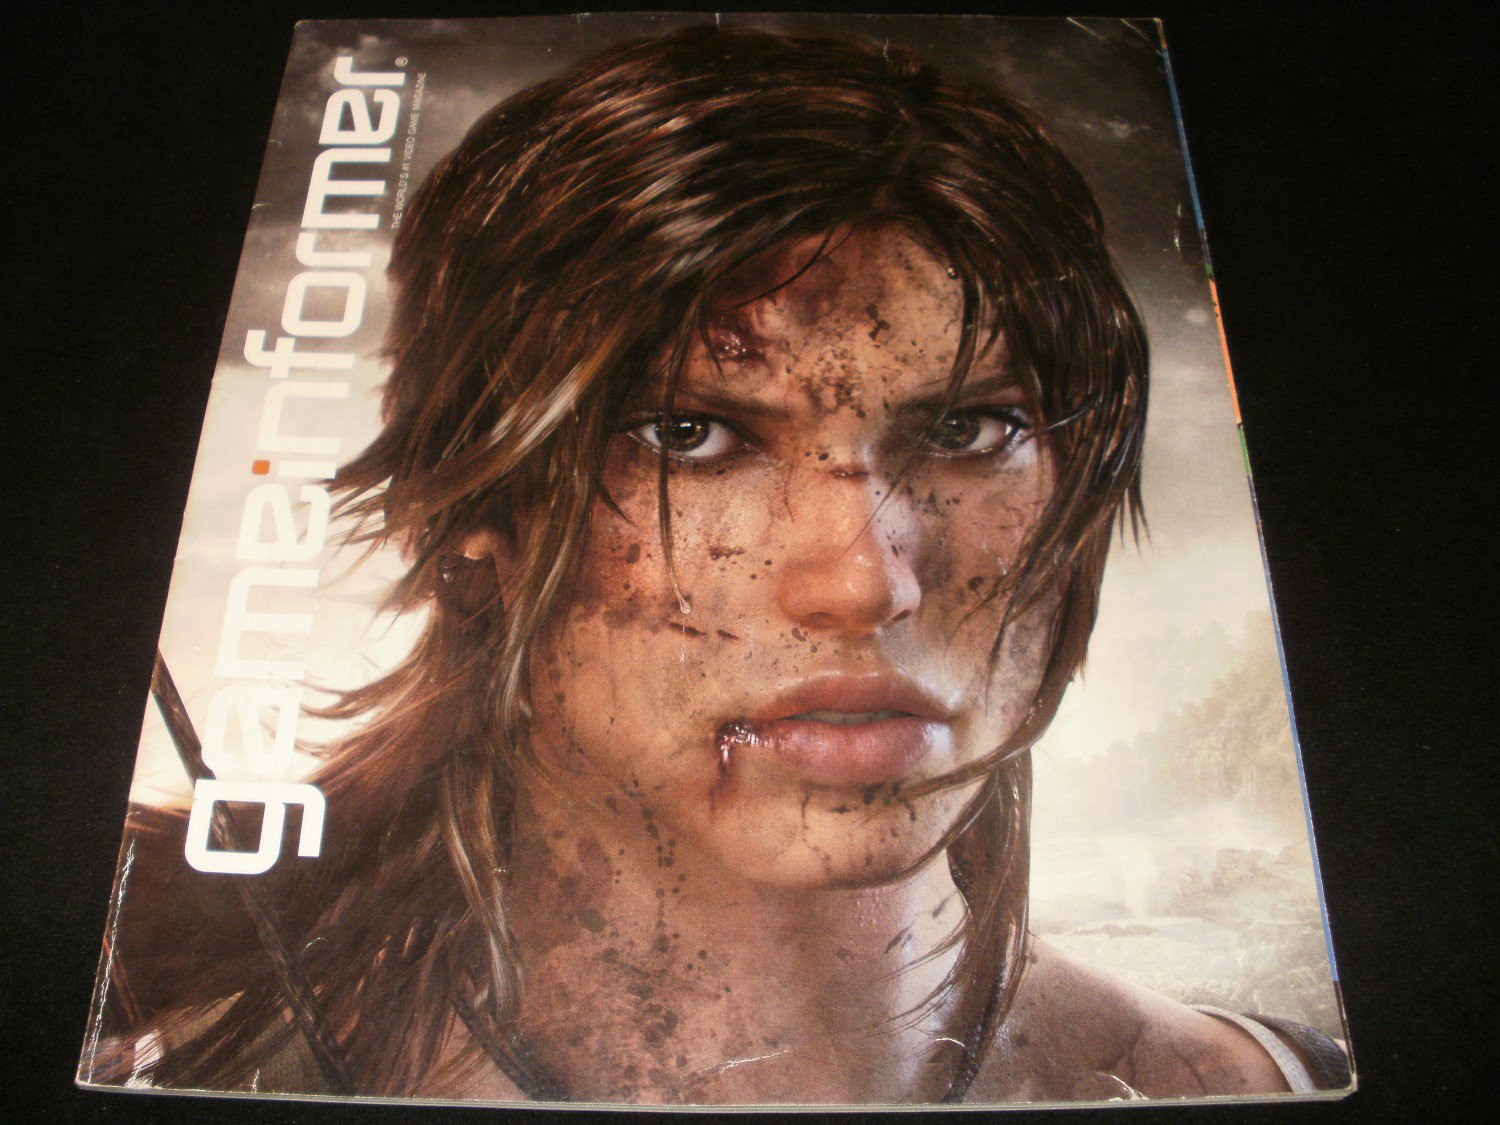 Game Informer Magazine - January 2011 - Issue 213 - Tomb Raider